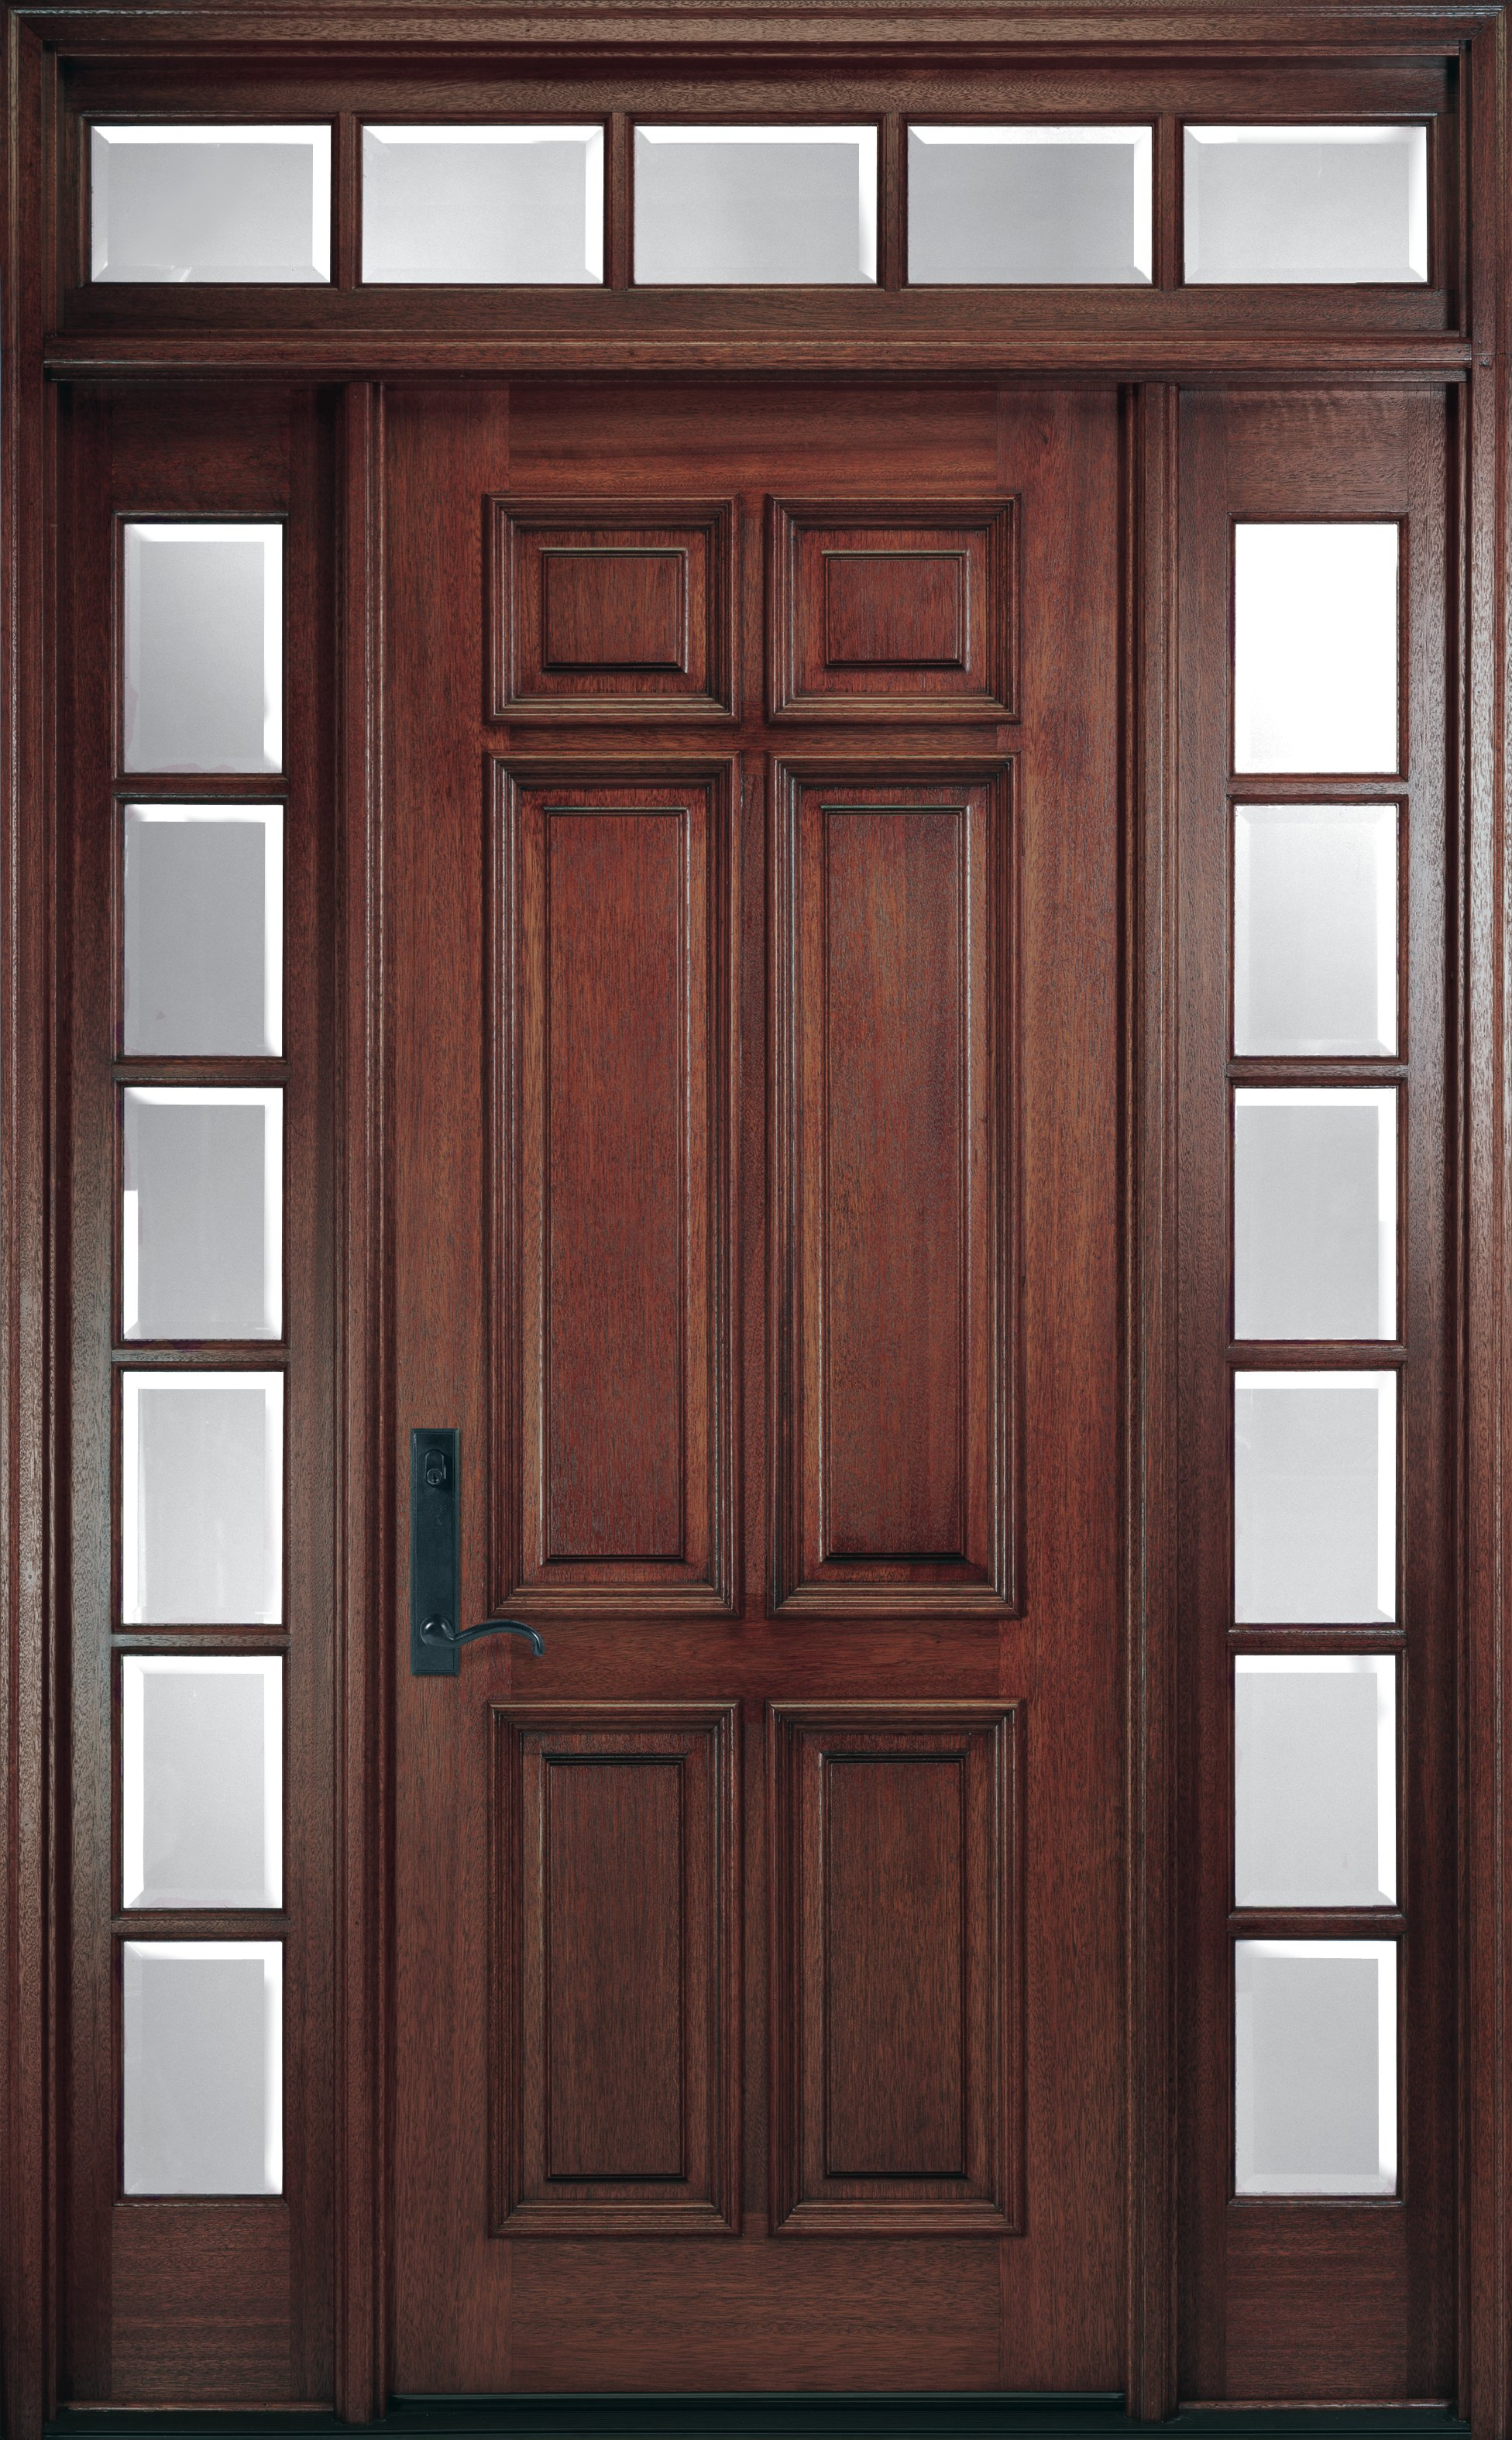 Astounding pella entry doors images plan 3d house goles pella corporation pre finished wood entry doors remodeling doors planetlyrics Choice Image